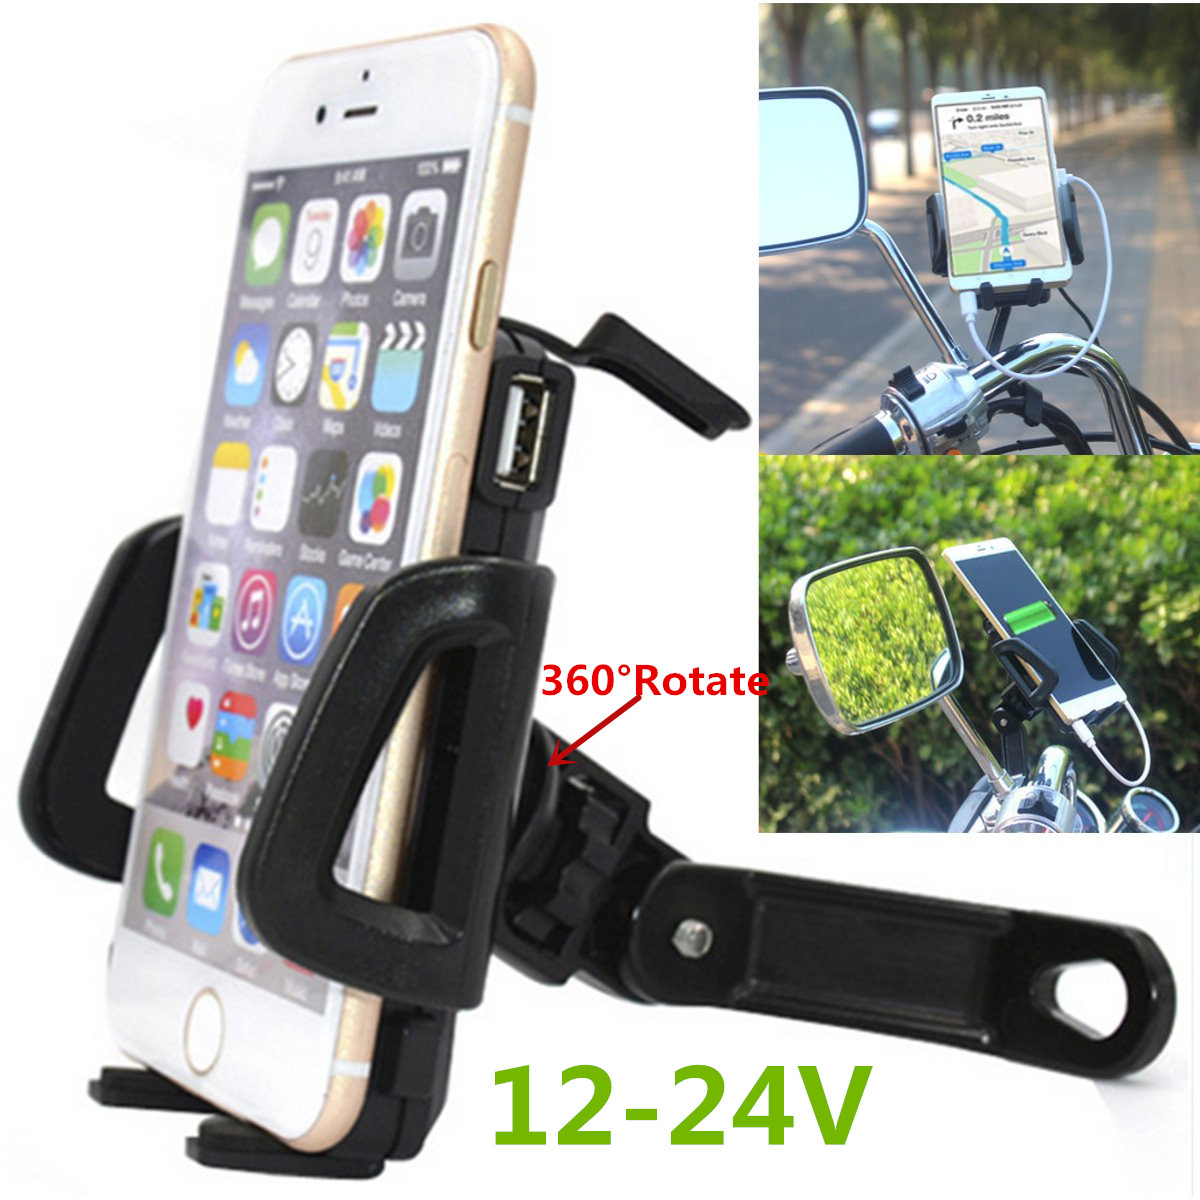 12-24V 360° Waterproof Navigation Motorcycle Mount Holder With USB Charger For 4.7-6.0 Inch Phone